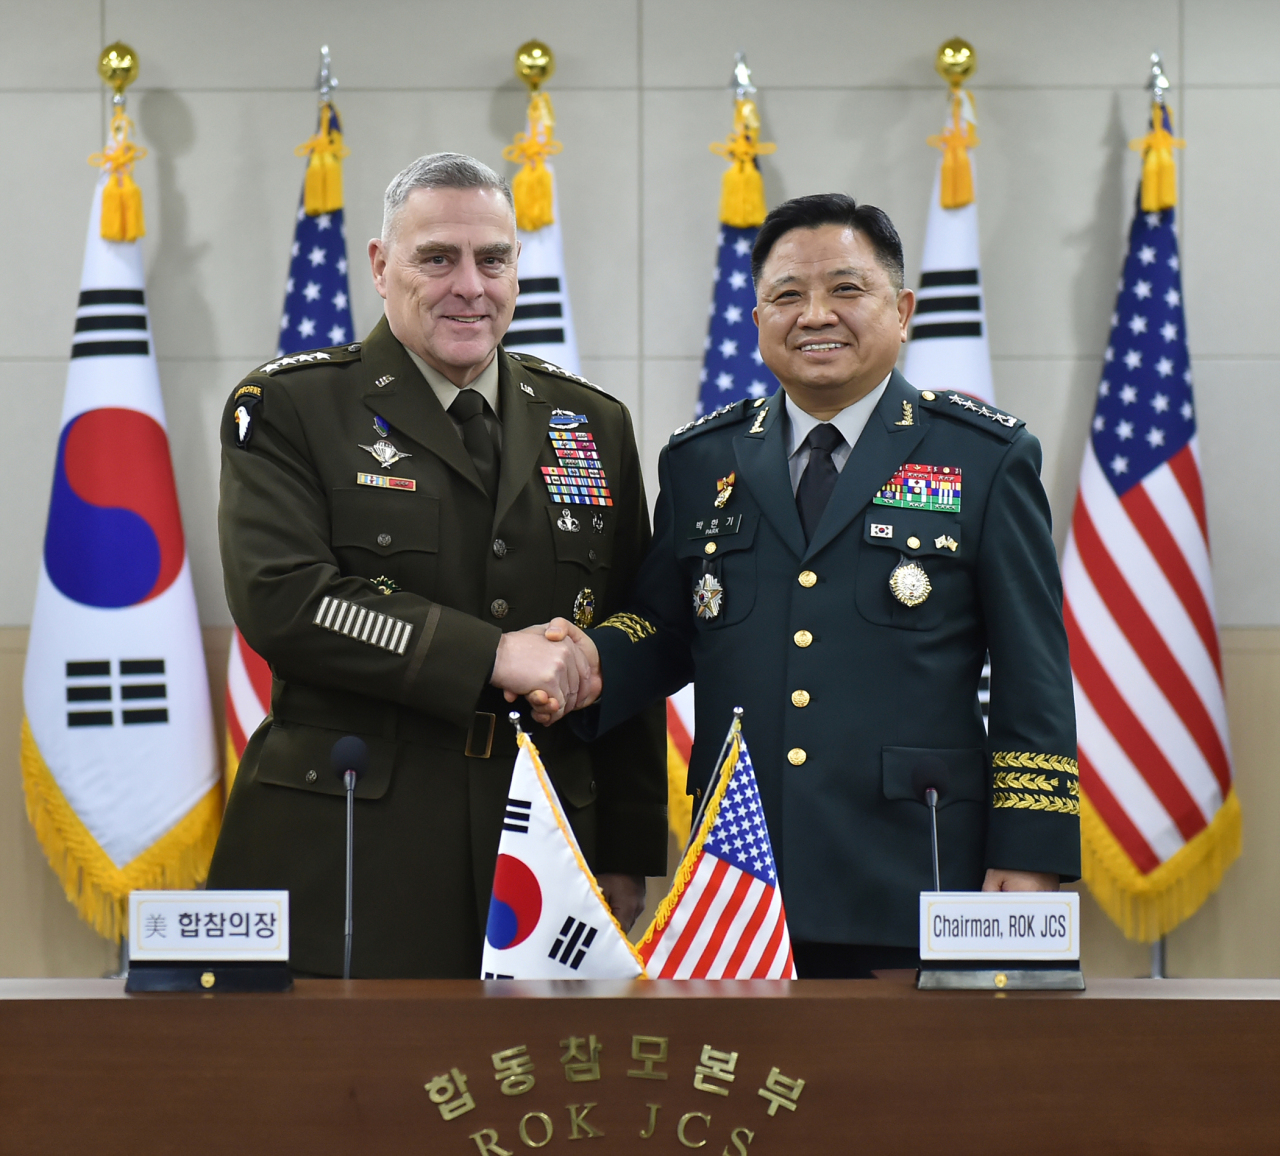 South Korea's Chairman of the Joint Chiefs of Staff Gen. Park Han-ki (right) and his US counterpart, Chairman of the Joint Chiefs of Staff Gen. Mark Milley, pose at the Joint Chiefs of Staff headquarters in Yongsan, central Seoul. (Joint Chiefs of Staff)